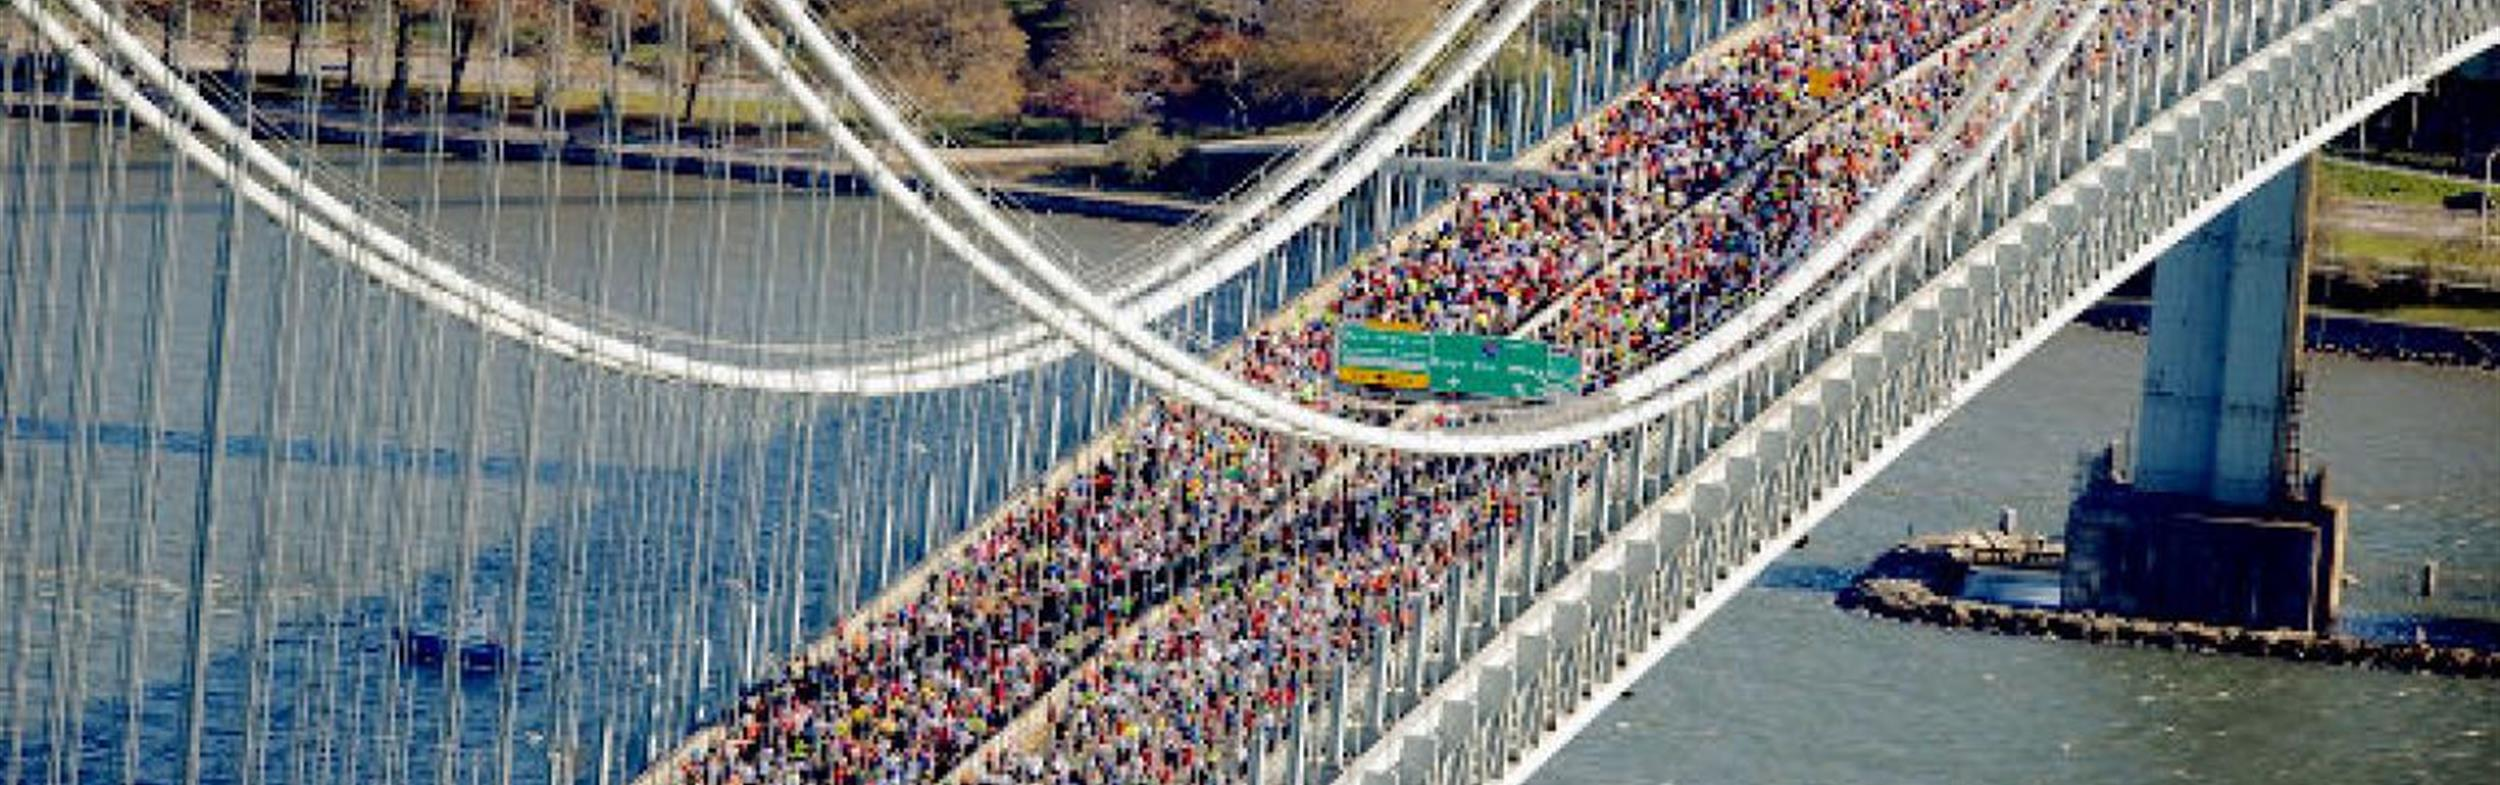 nyc-marathon-bridge.jpg